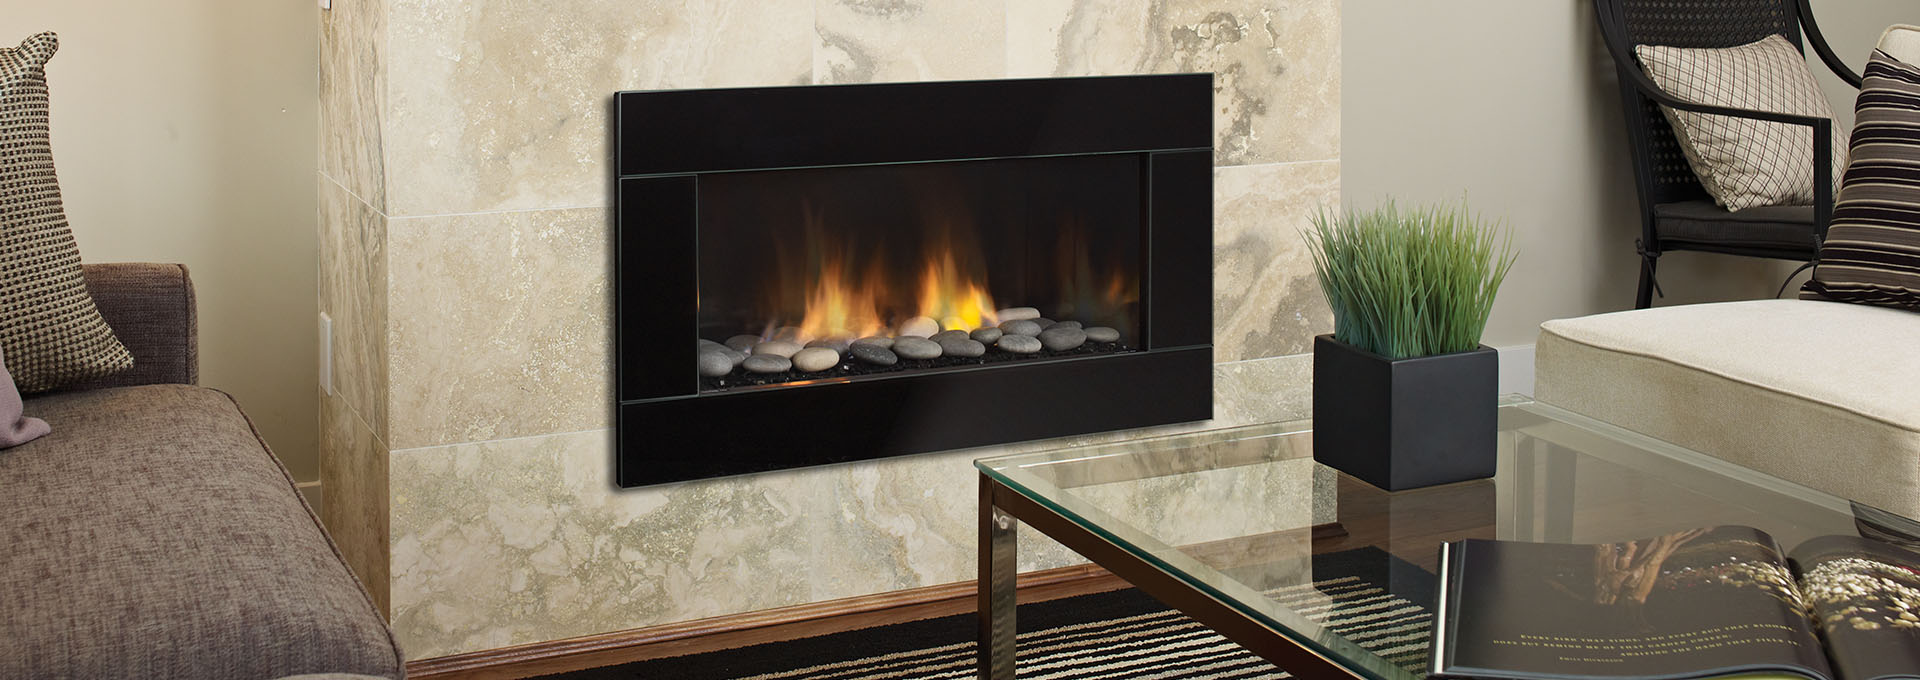 Horizon HZ30E Gas Fireplace 2